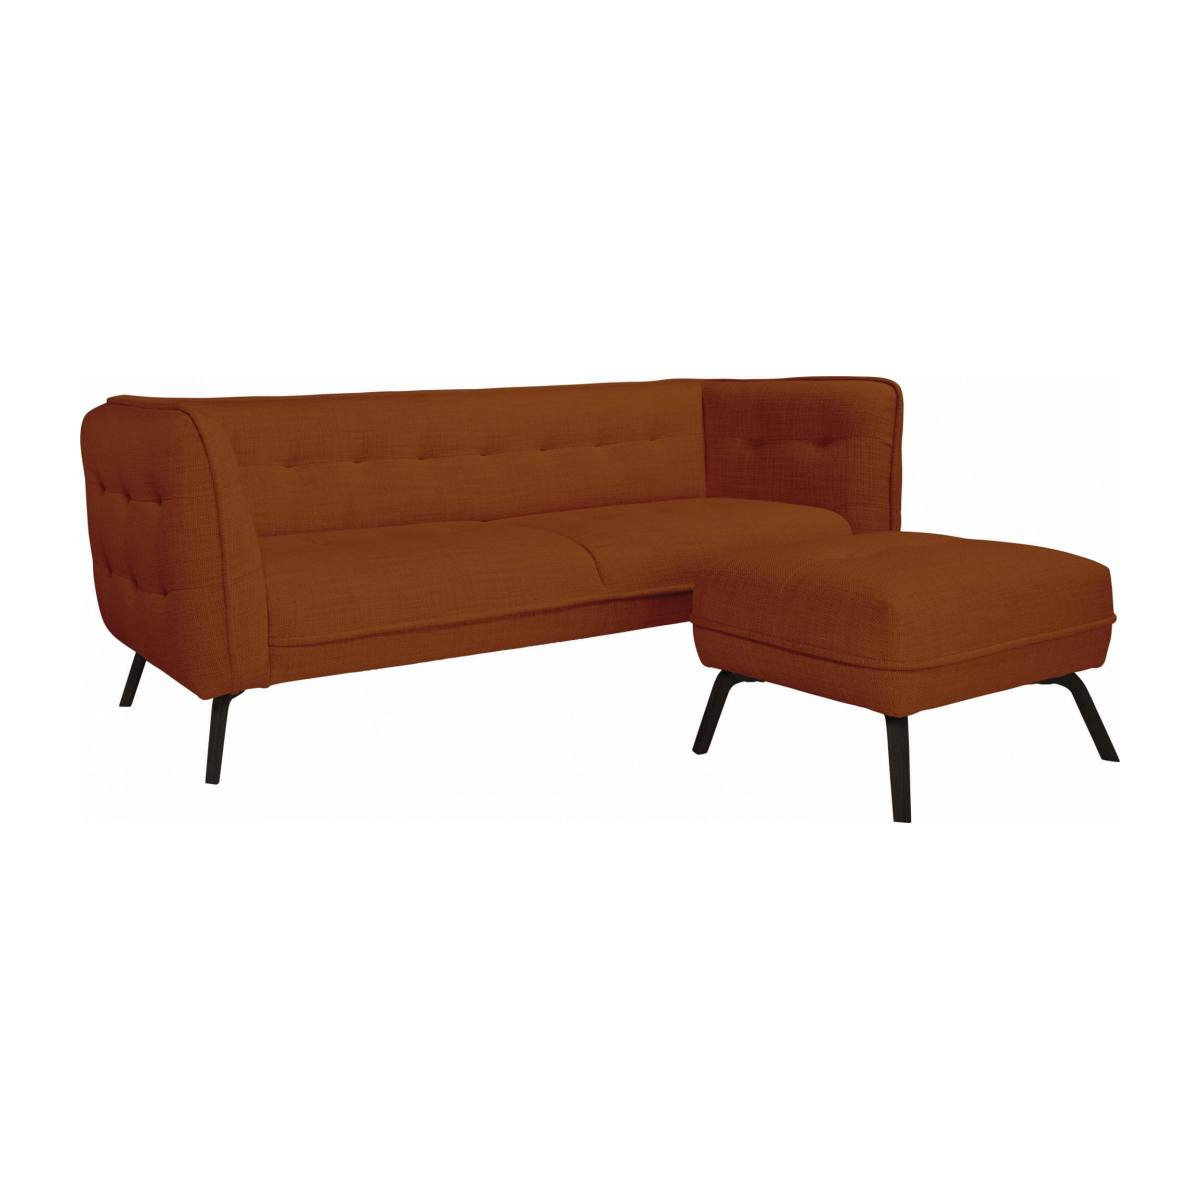 3 seater sofa in Fasoli fabric, warm red rock and dark legs n°9